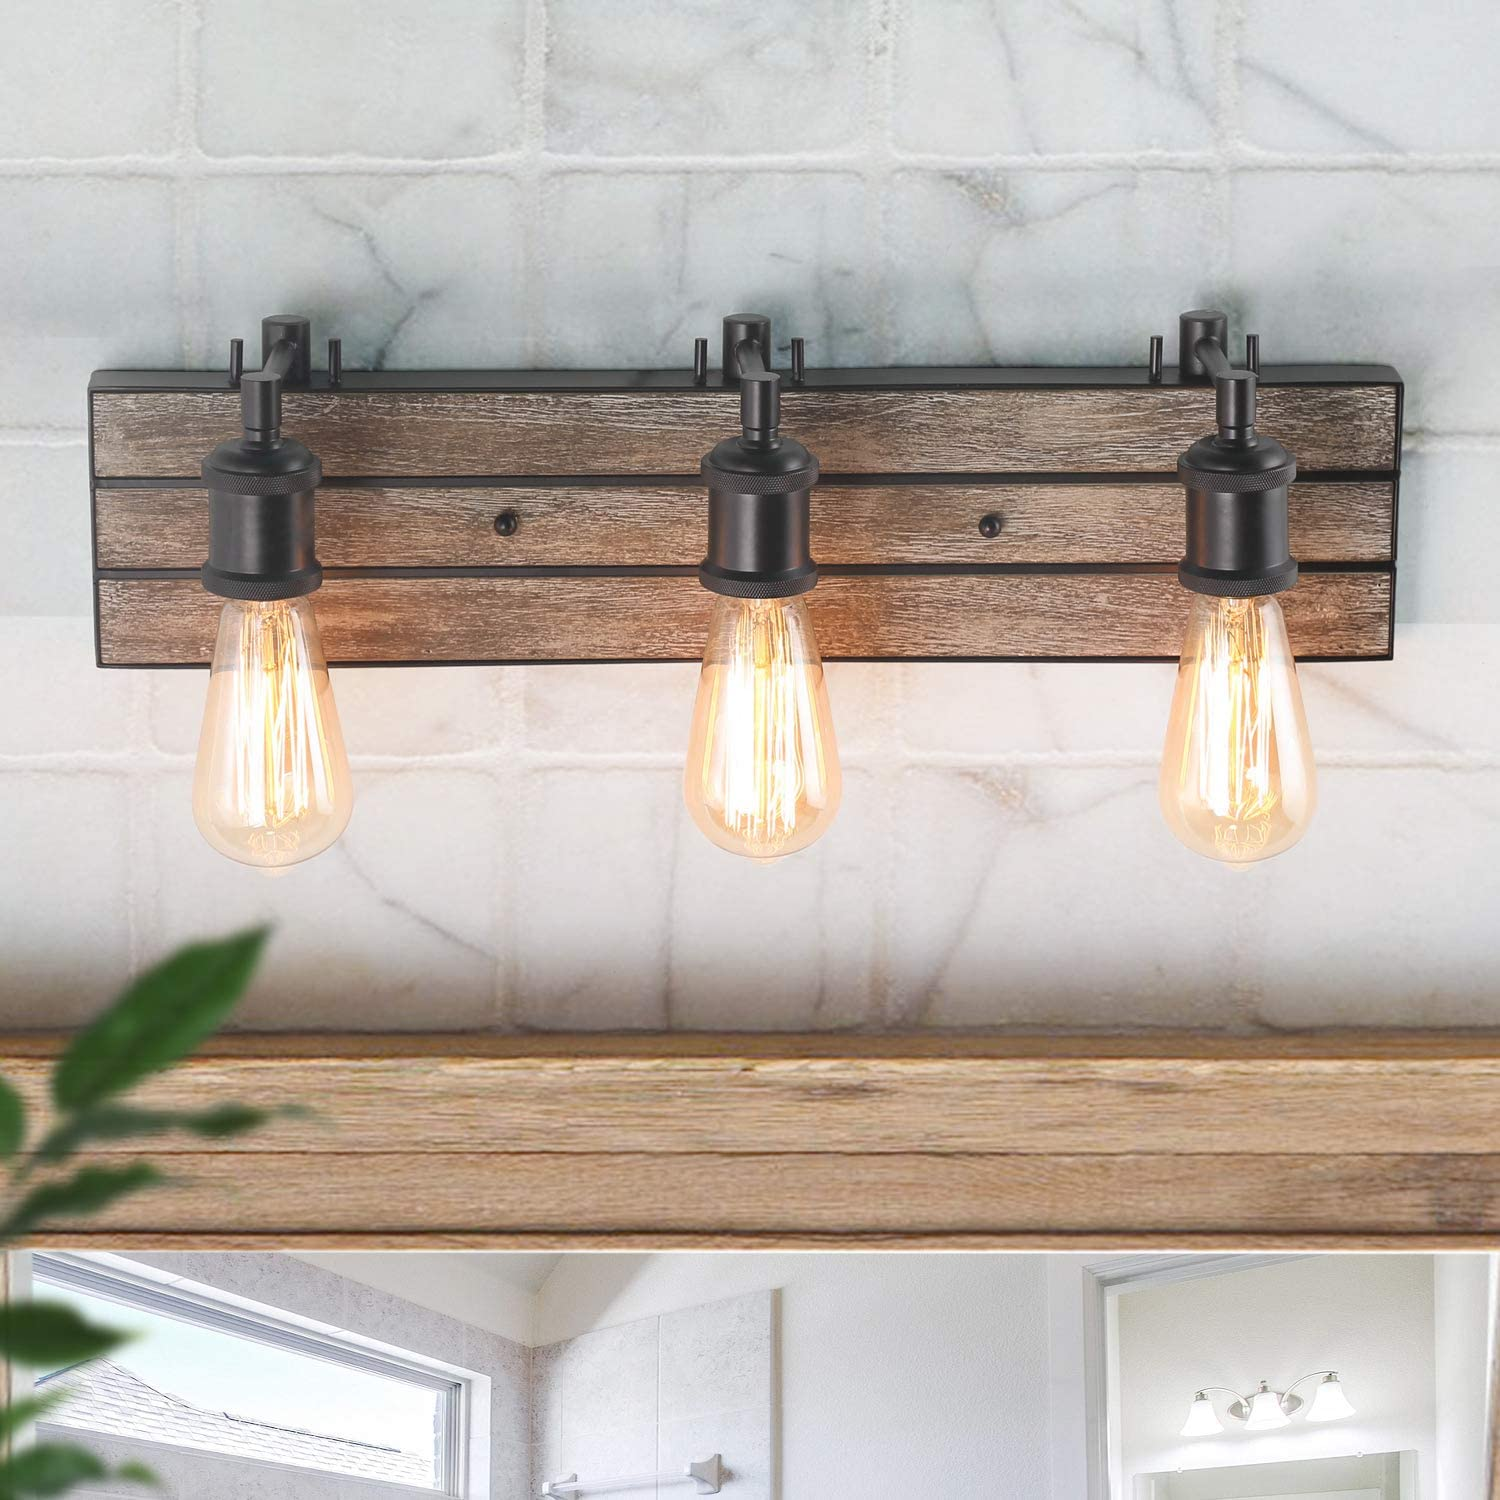 LOG BARN 3 Lights Farmhouse Vanity Light in Real Antique Wood and Dark Brown Metal Finish, 21.3 Wall Sconce for Bathroom